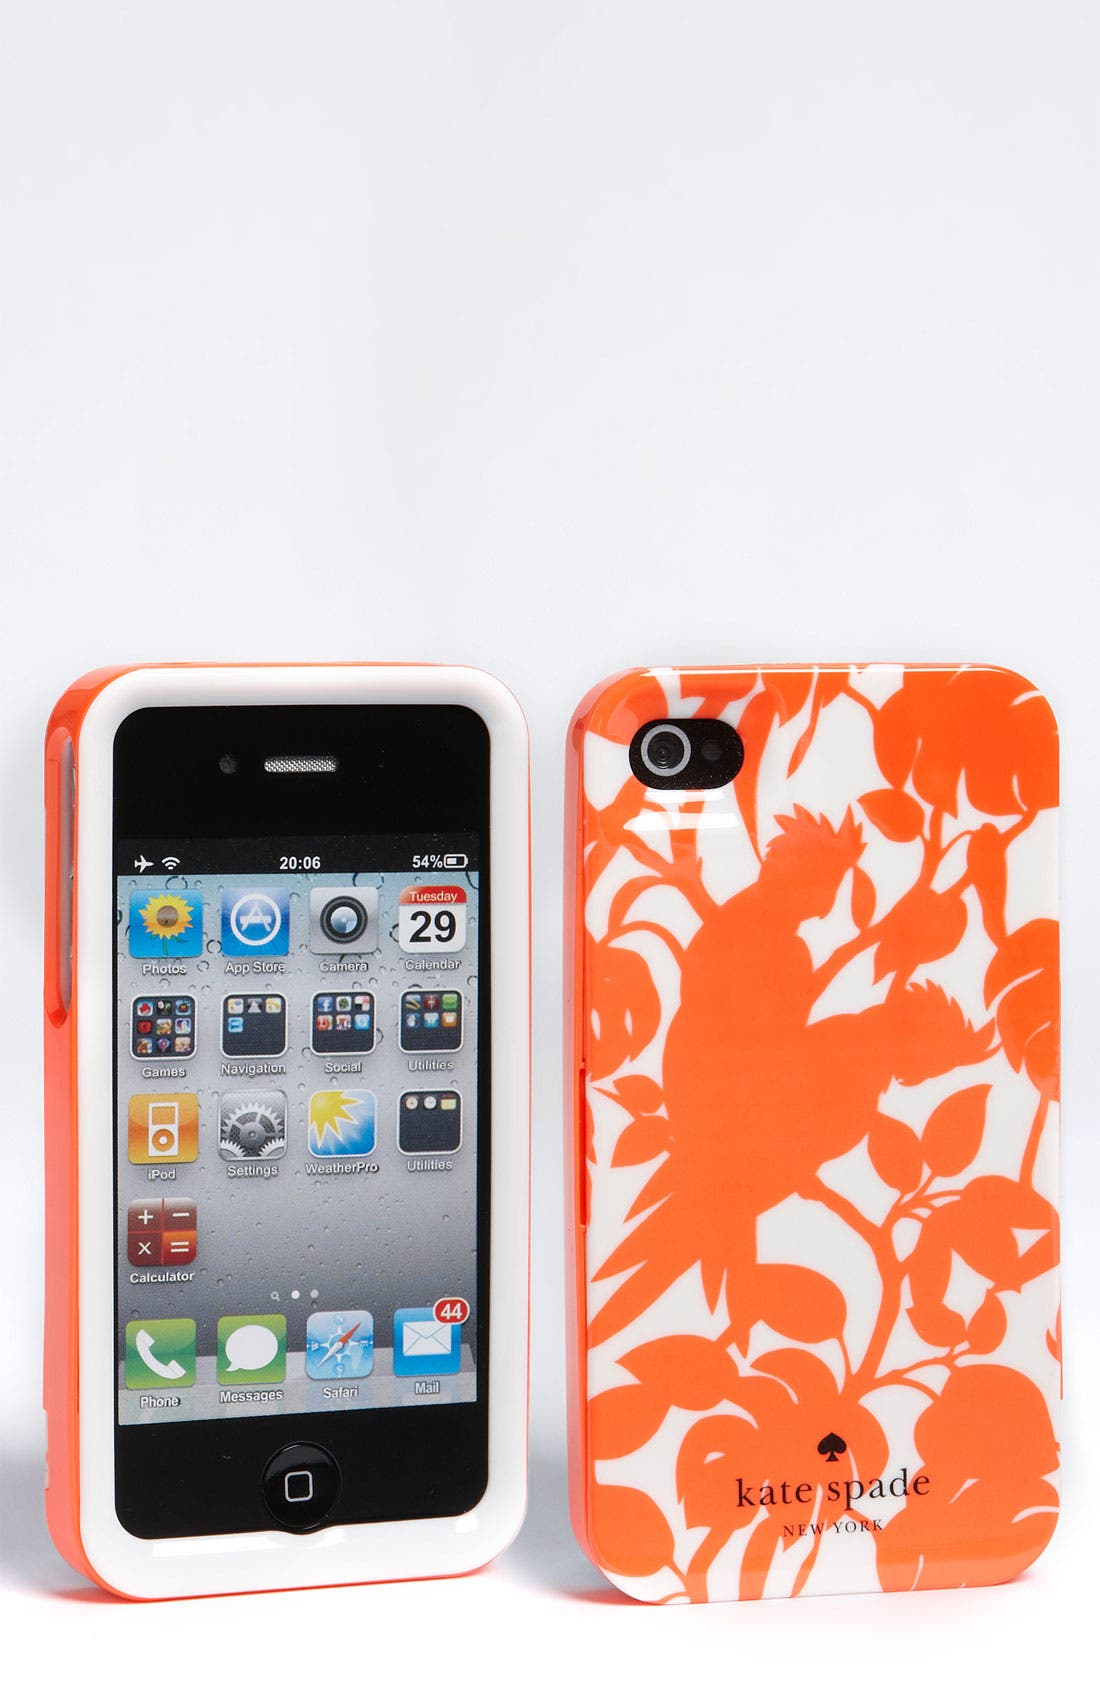 Main Image - kate spade new york 'cockatoos' iPhone 4 & 4S case